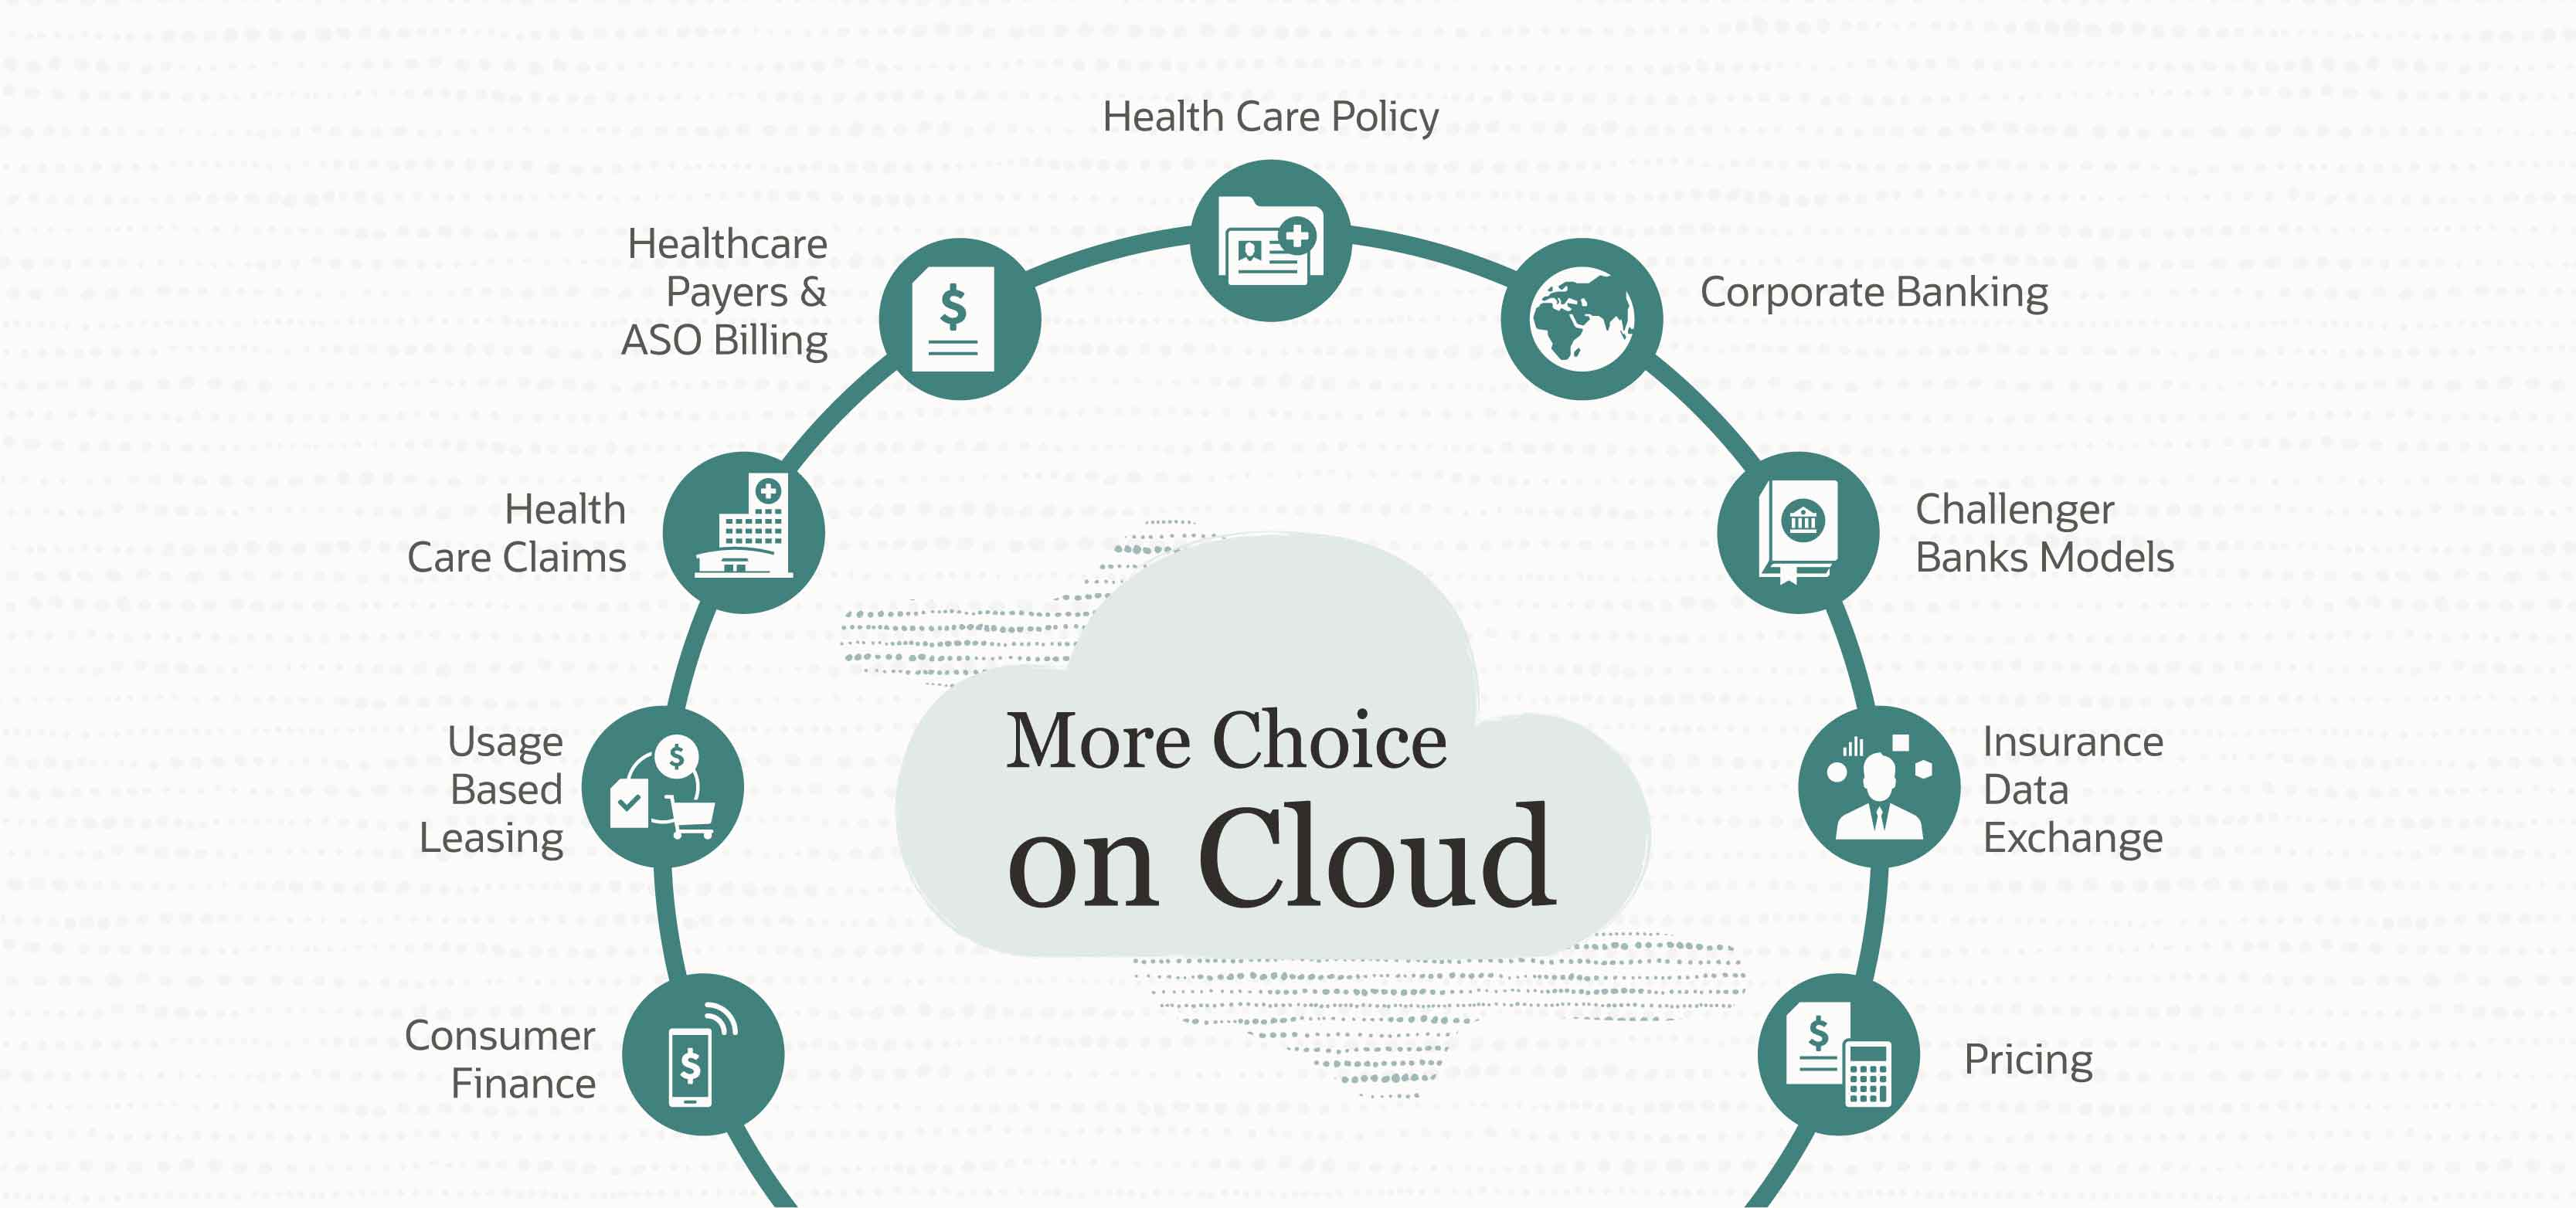 More Choice on Cloud